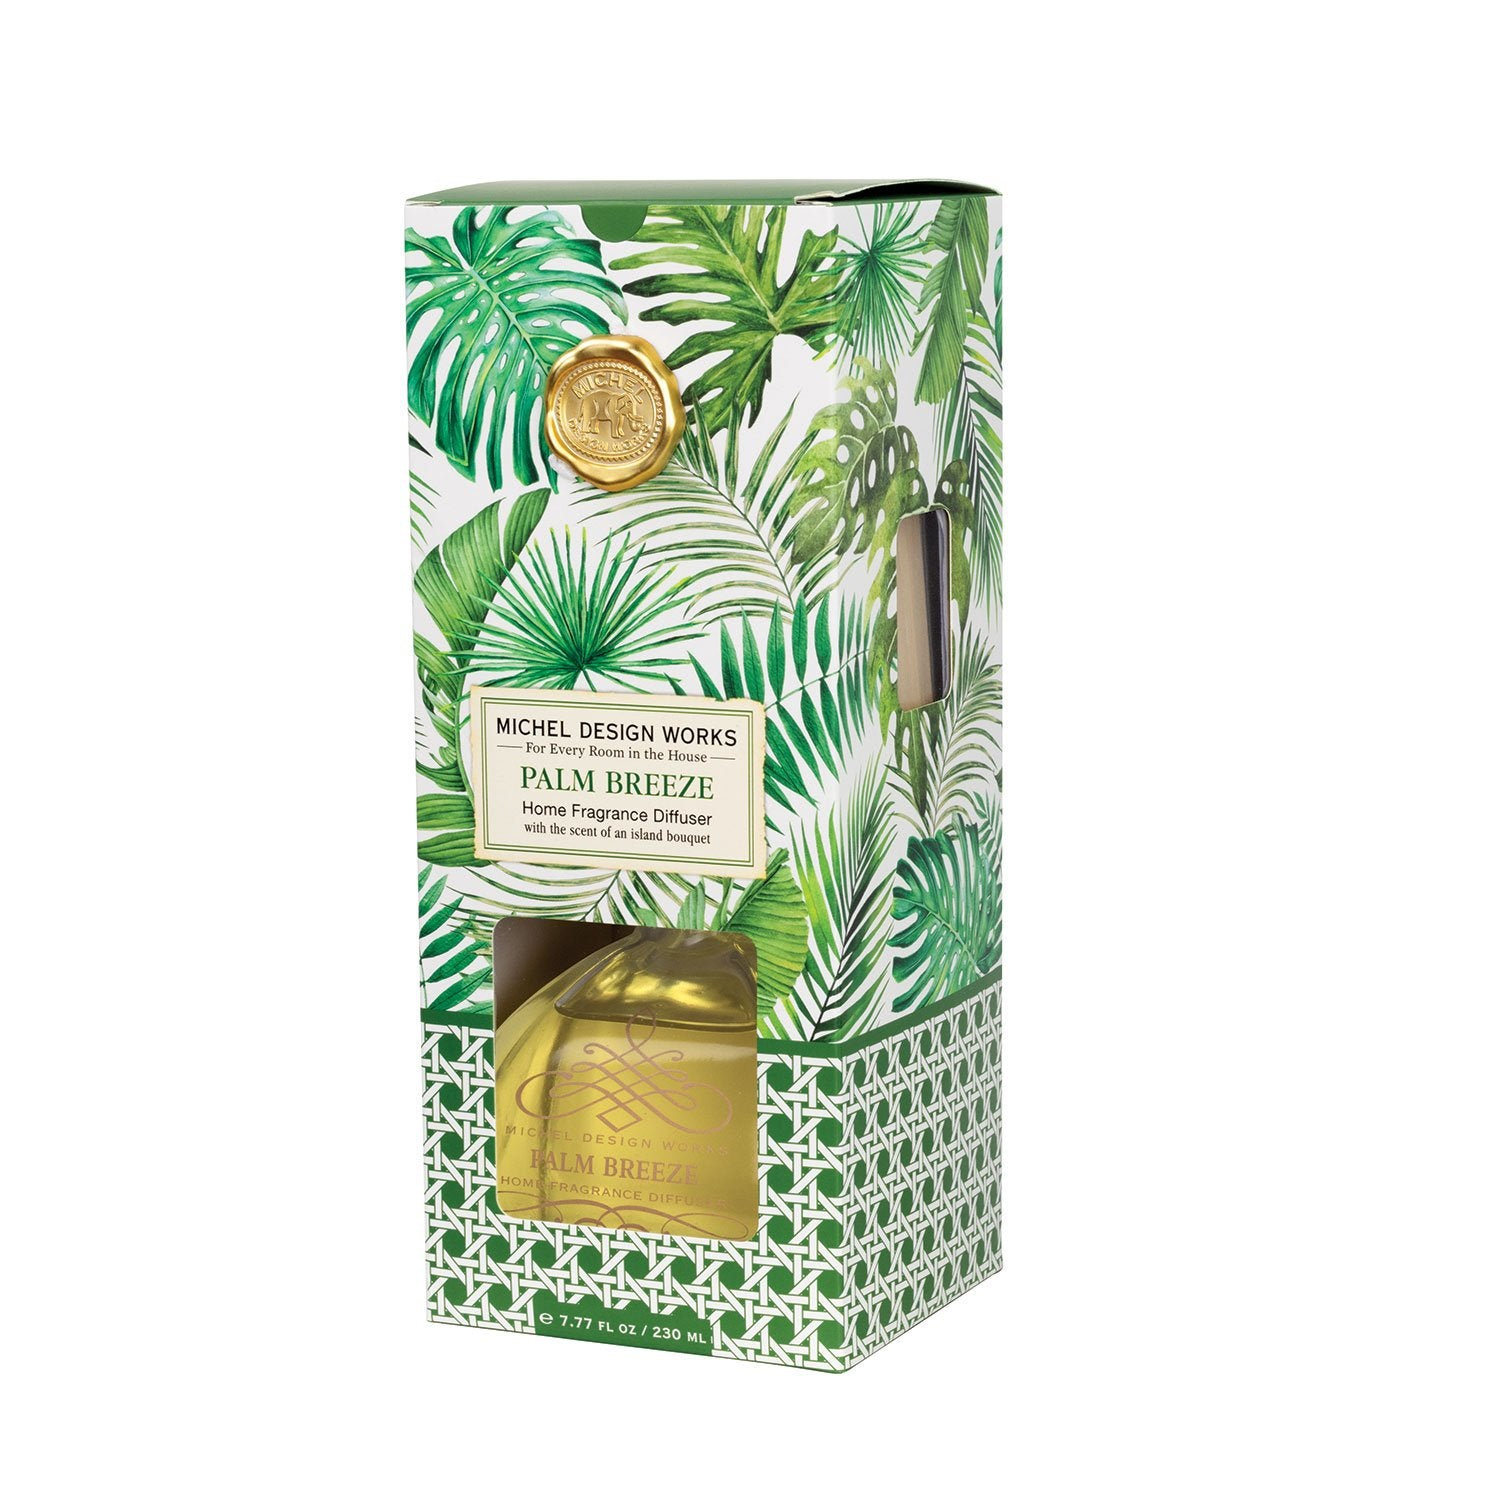 Palm Breeze Home Fragrance Diffuser